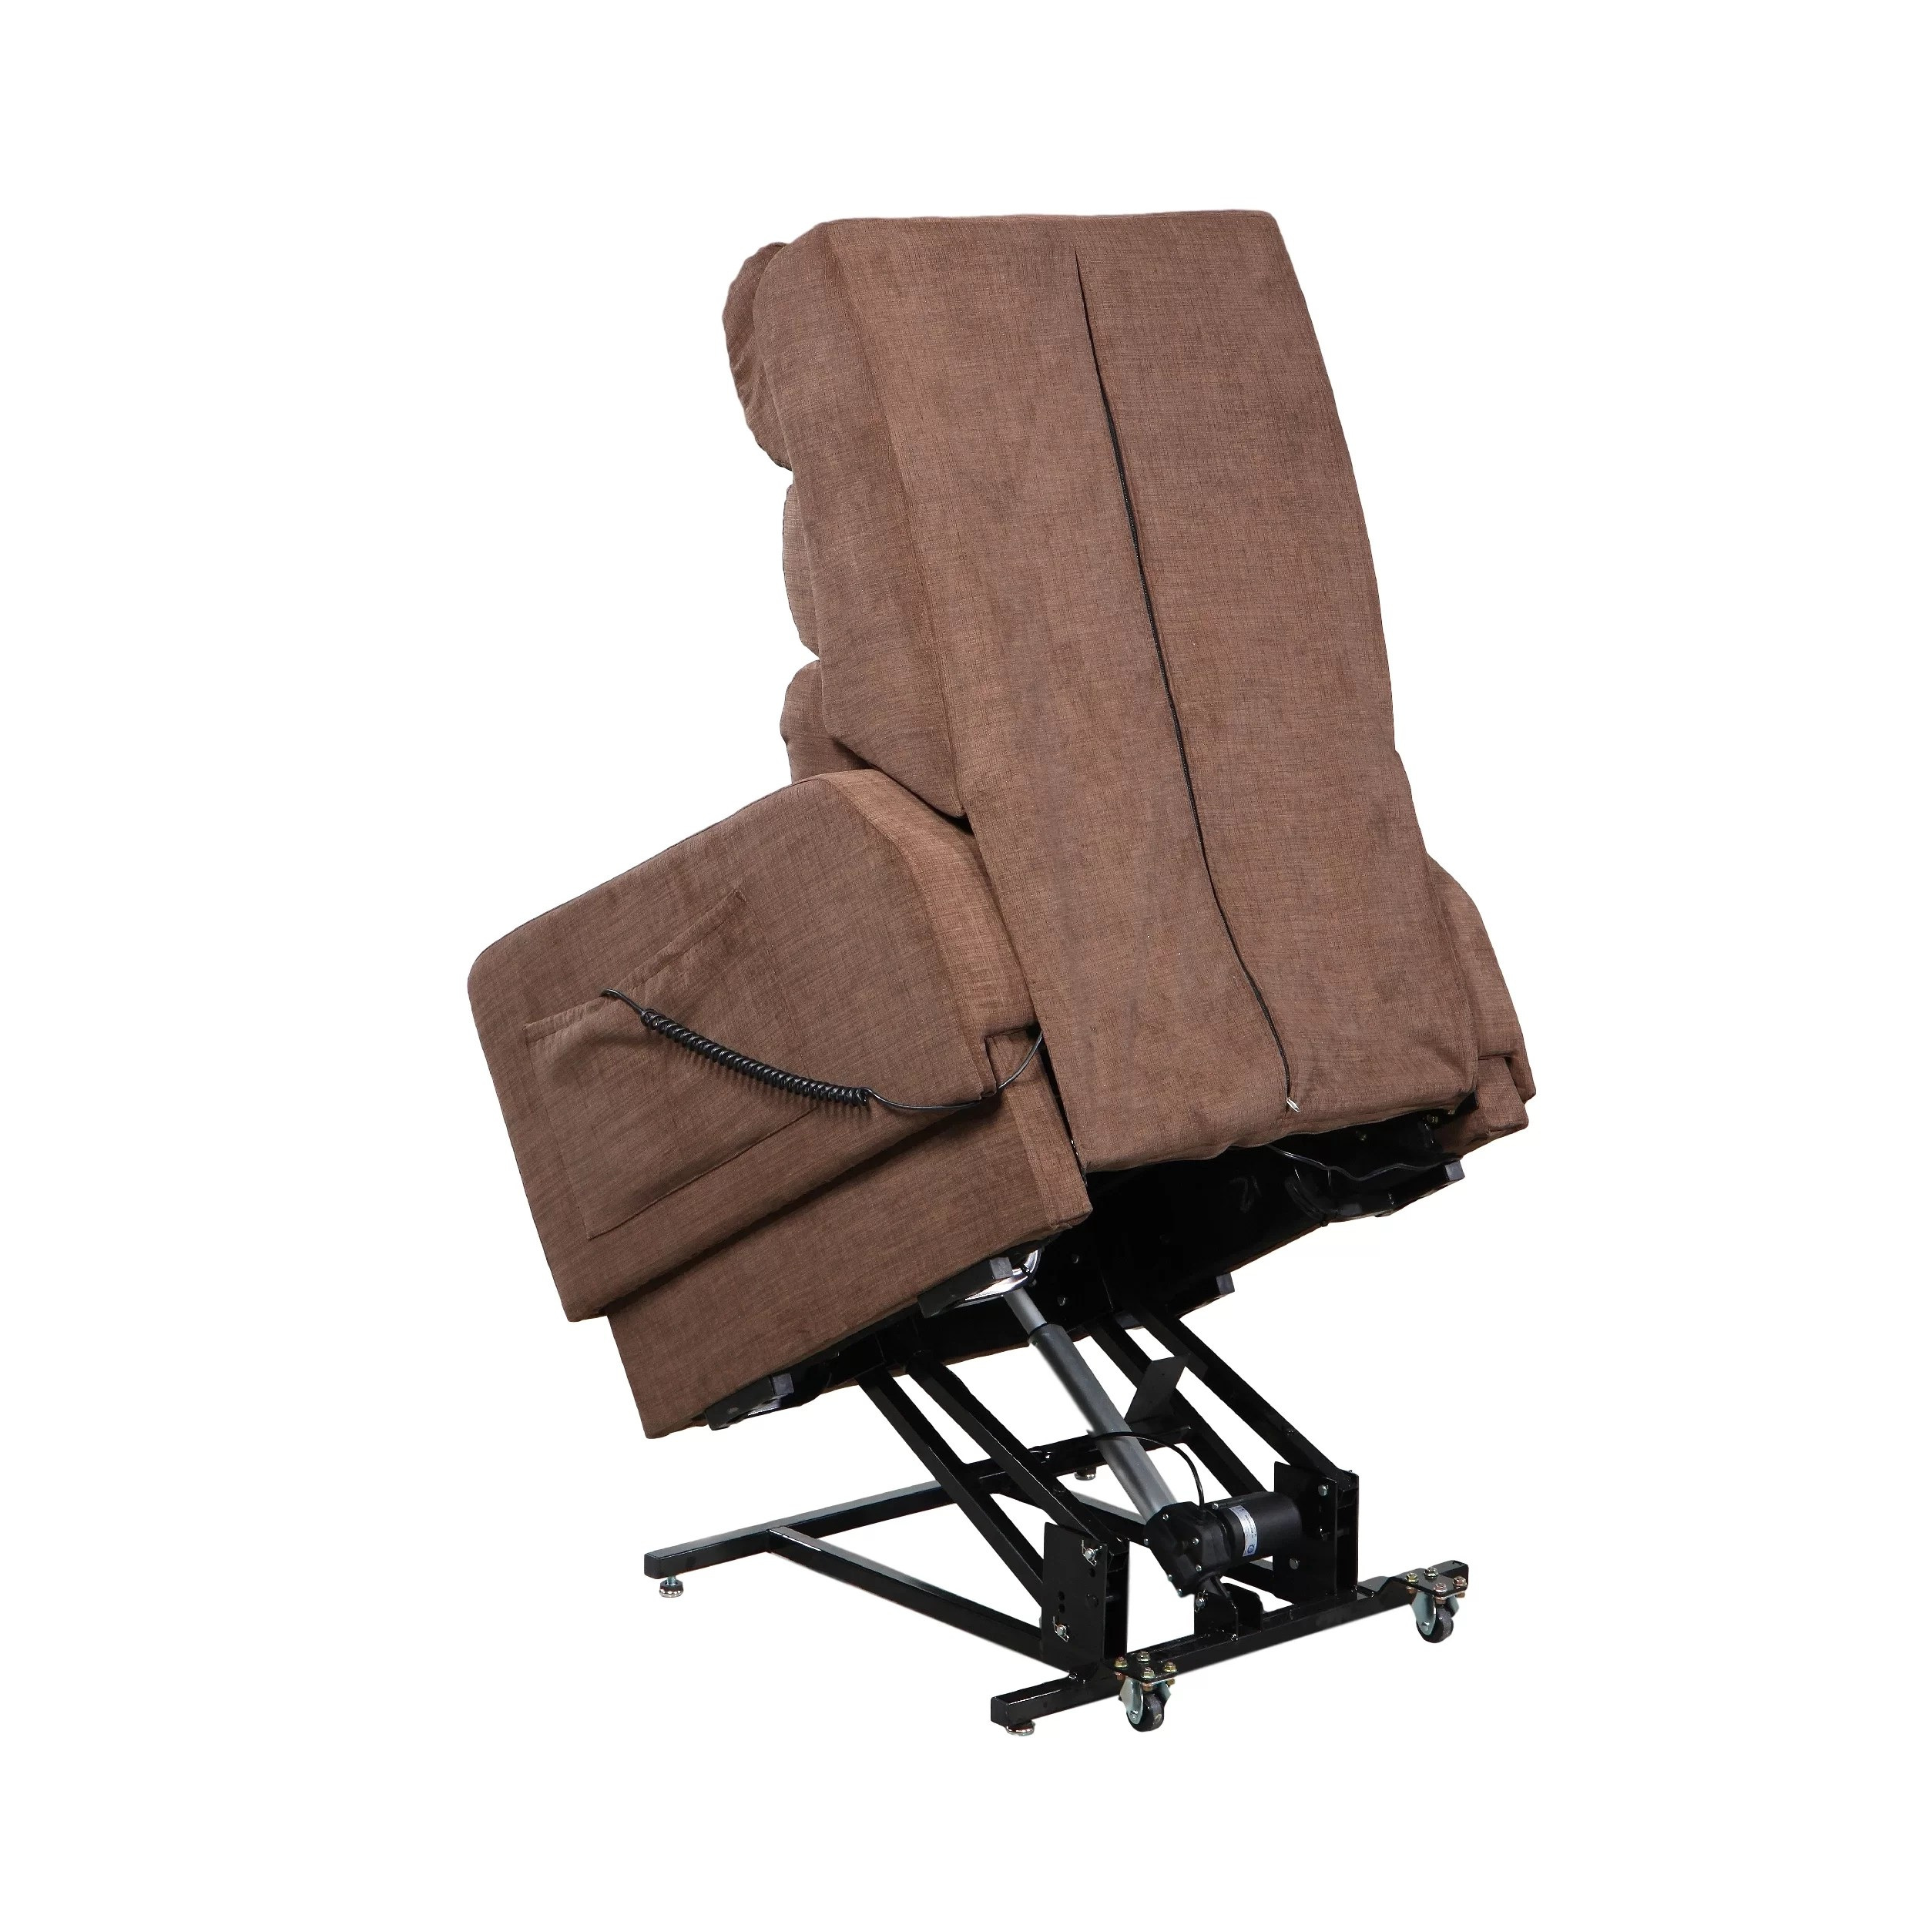 Zero Gravity Lift Chair Cozzia Mobility Zero Gravity Positioning Lift Chair Wayfair